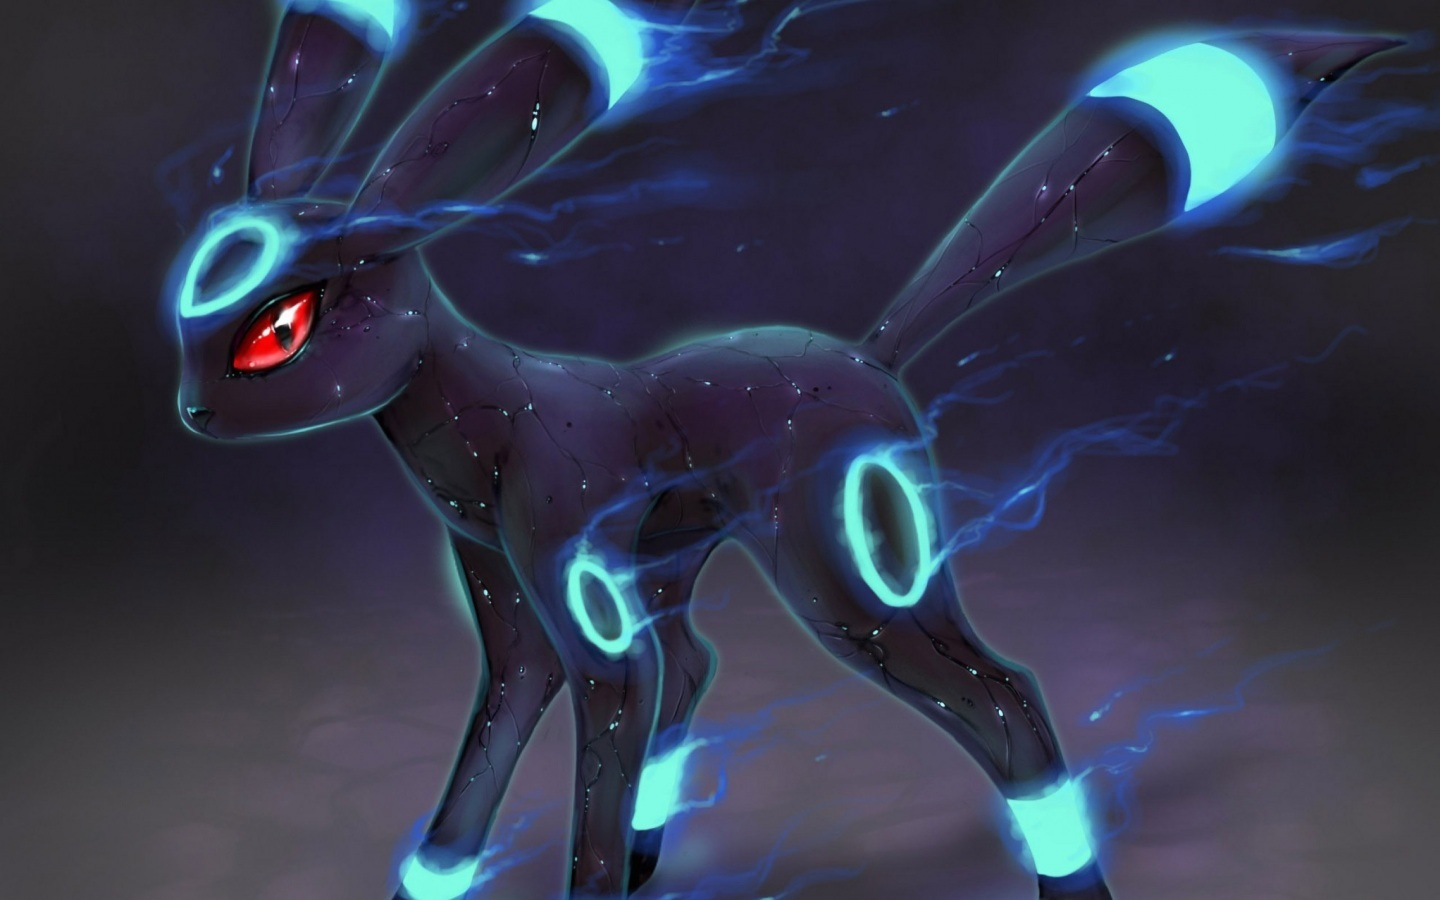 Umbreon Pokemon Anime Hd Wallpaper Wallpaper 900x480 Photo Shared By 1440x900